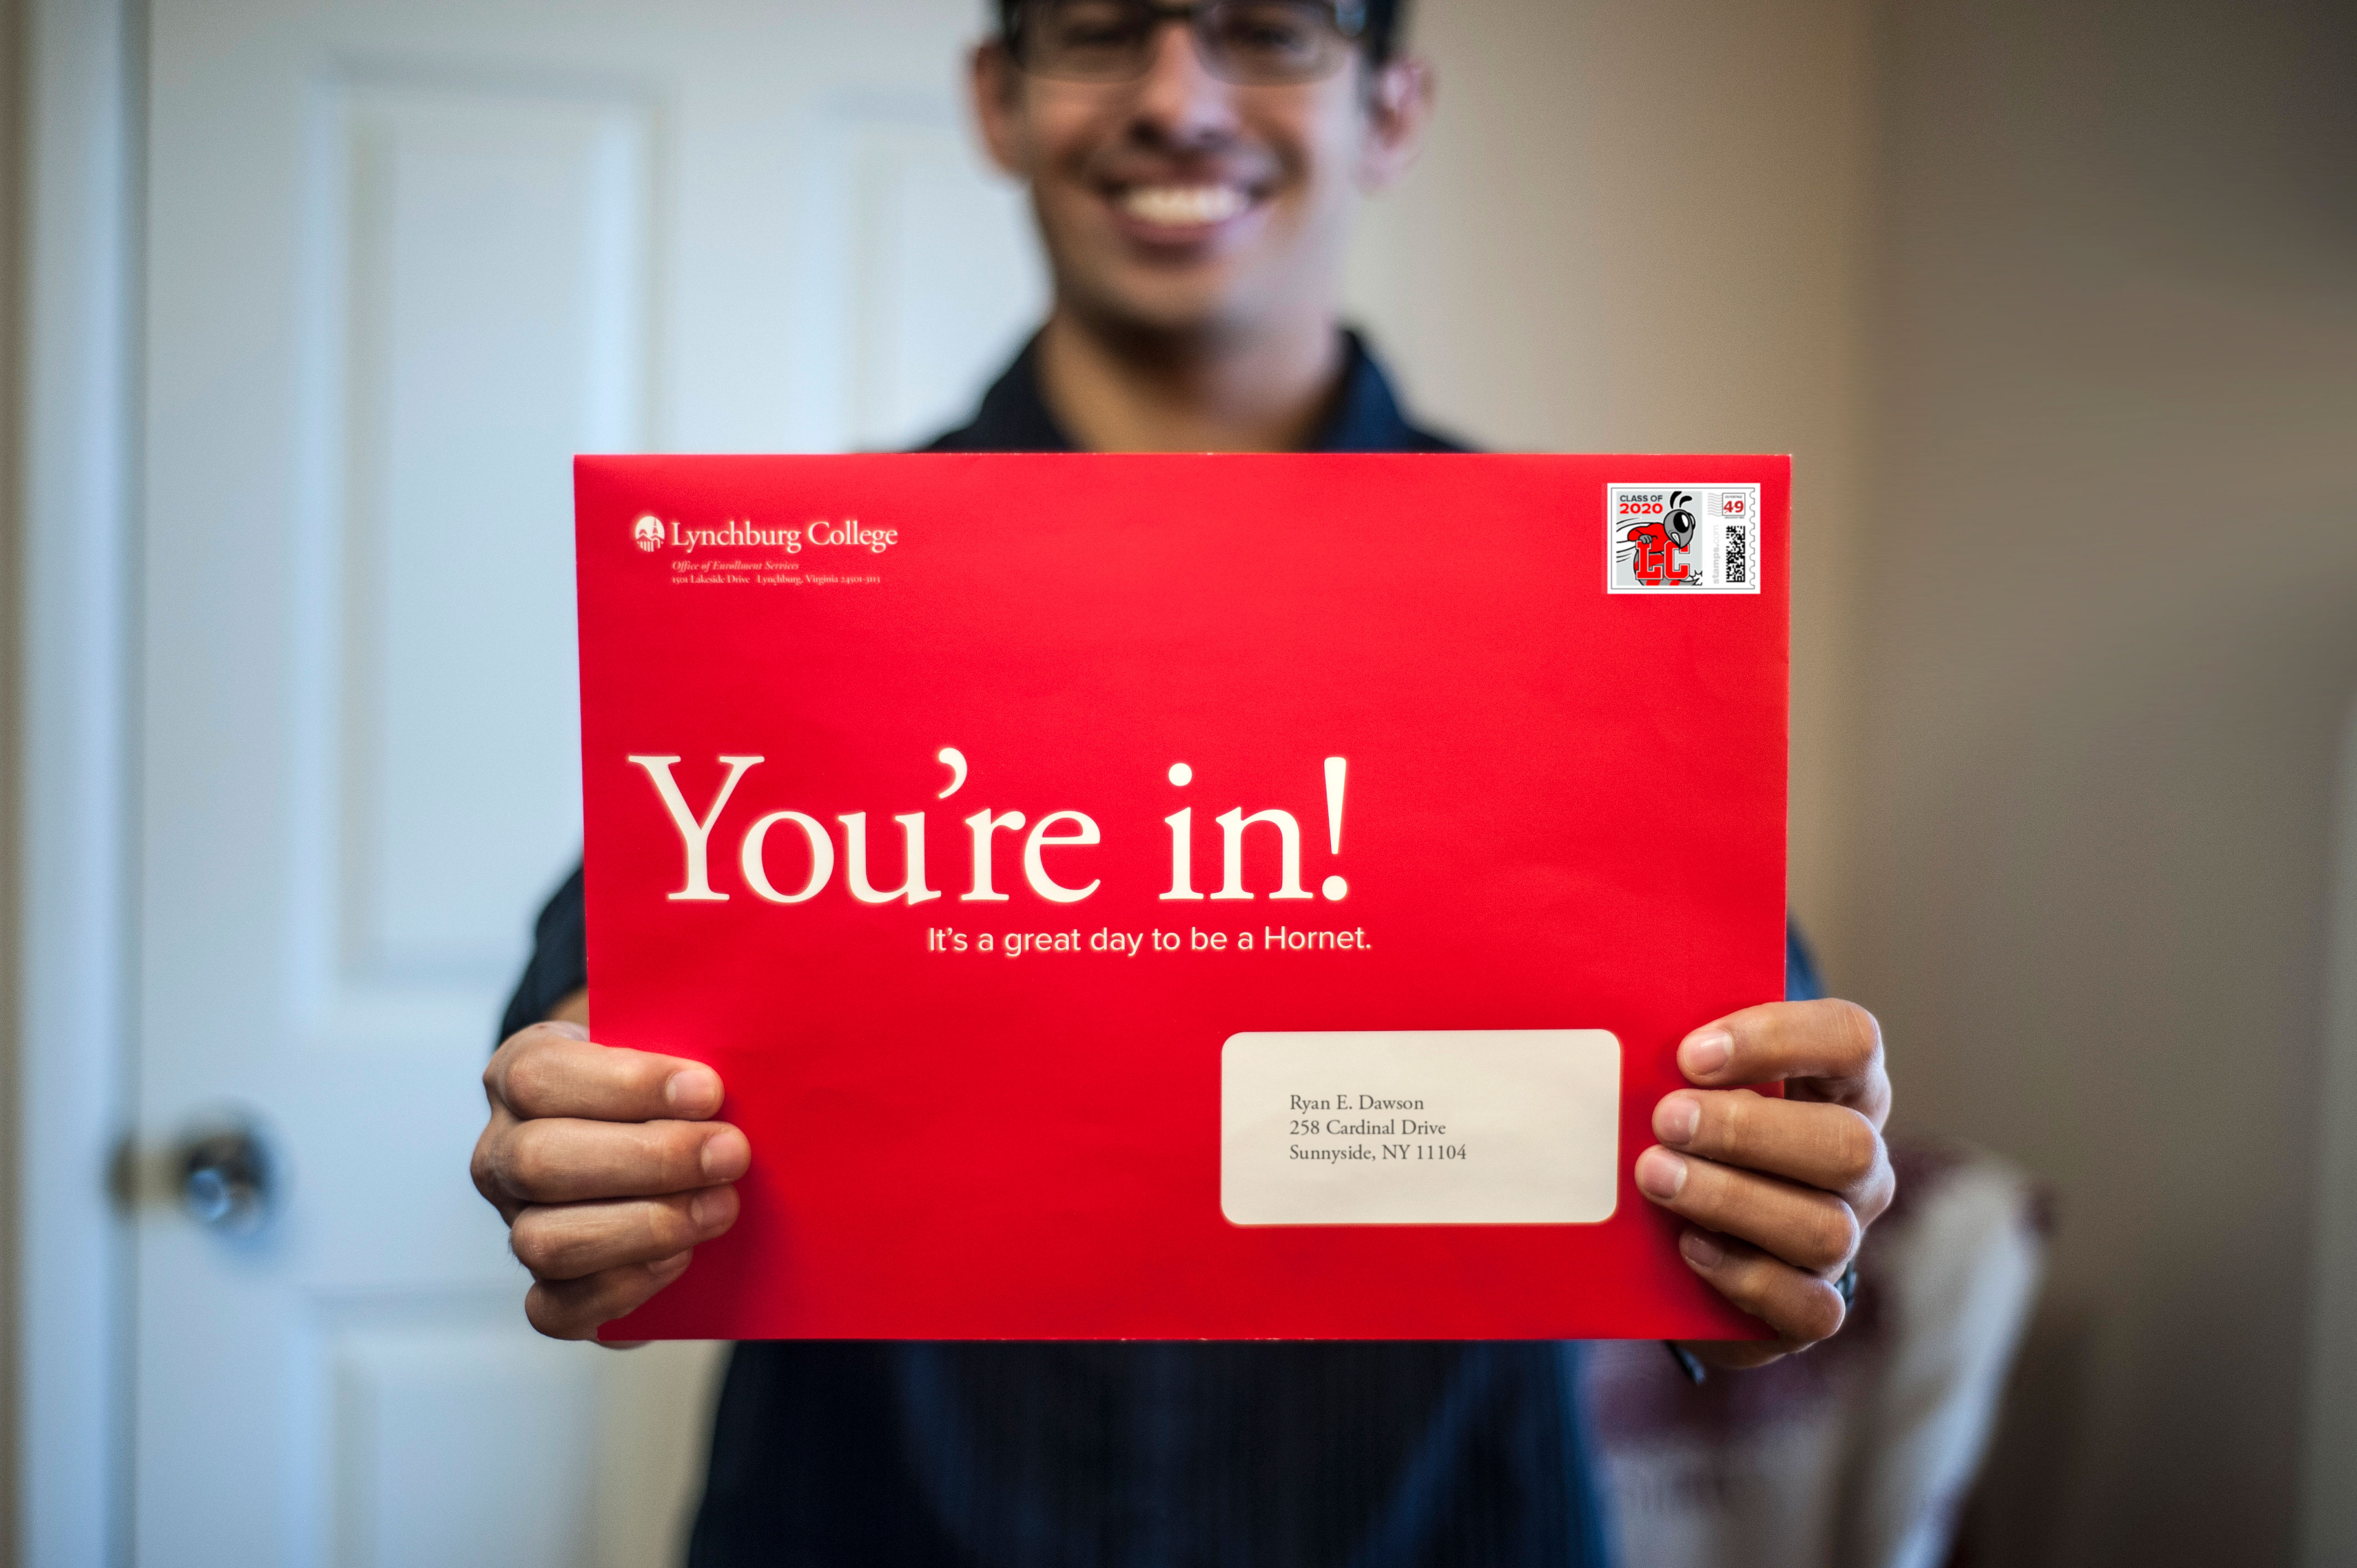 Future Hornets enjoy acceptance letters in big red envelopes – College Acceptance Letters